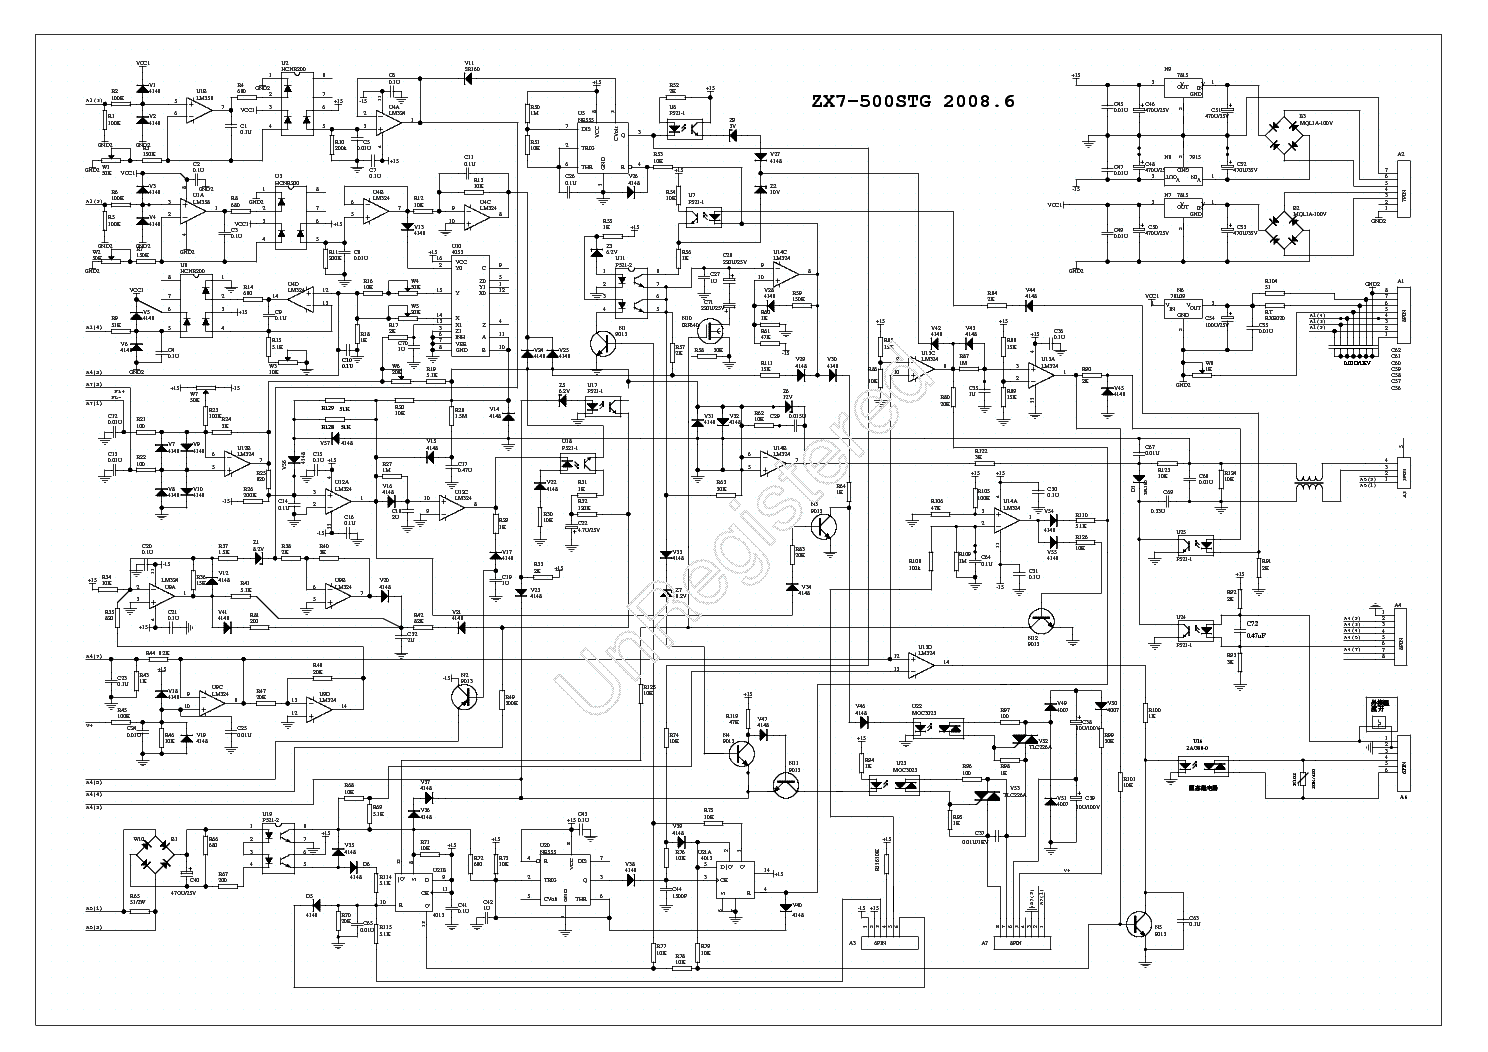 dc welding machine diagram zx7 500stg inverter dc welding service manual download ... #9